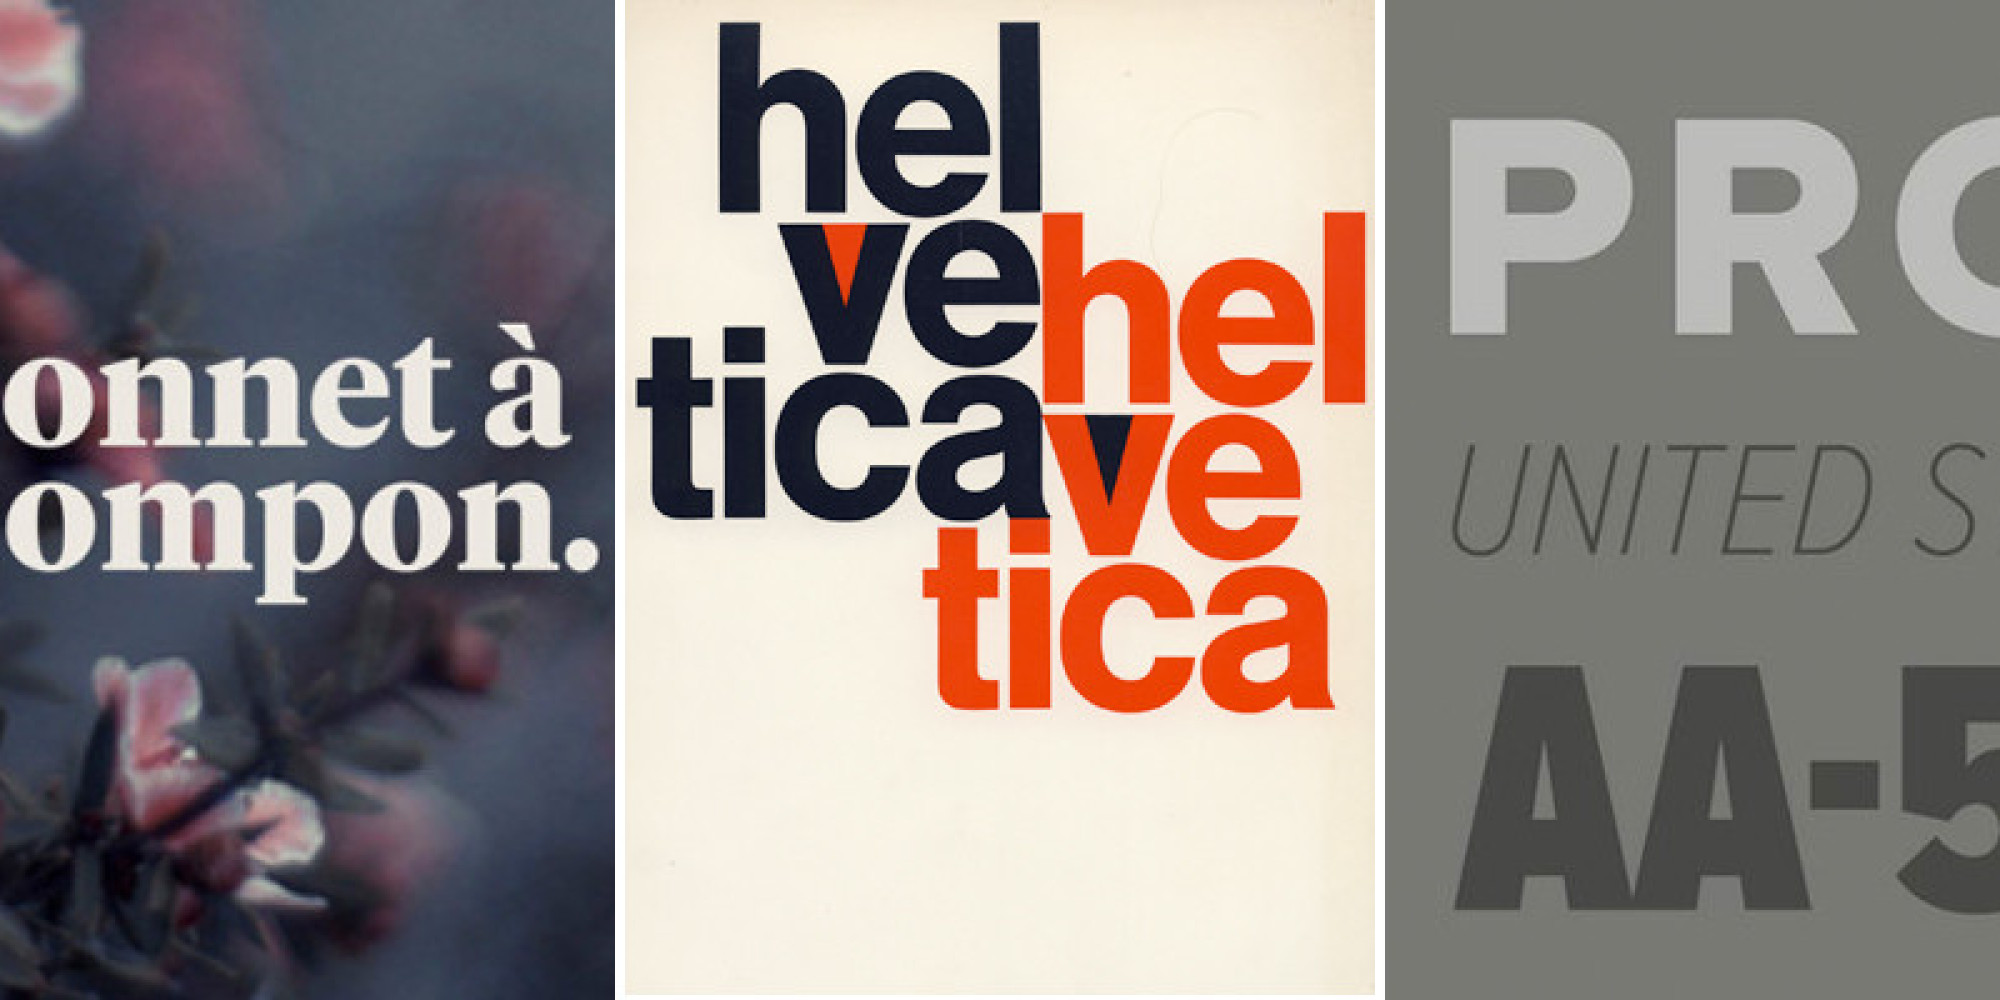 Beyond Helvetica: 9 More Résumé Fonts That Stand Out, According To ...